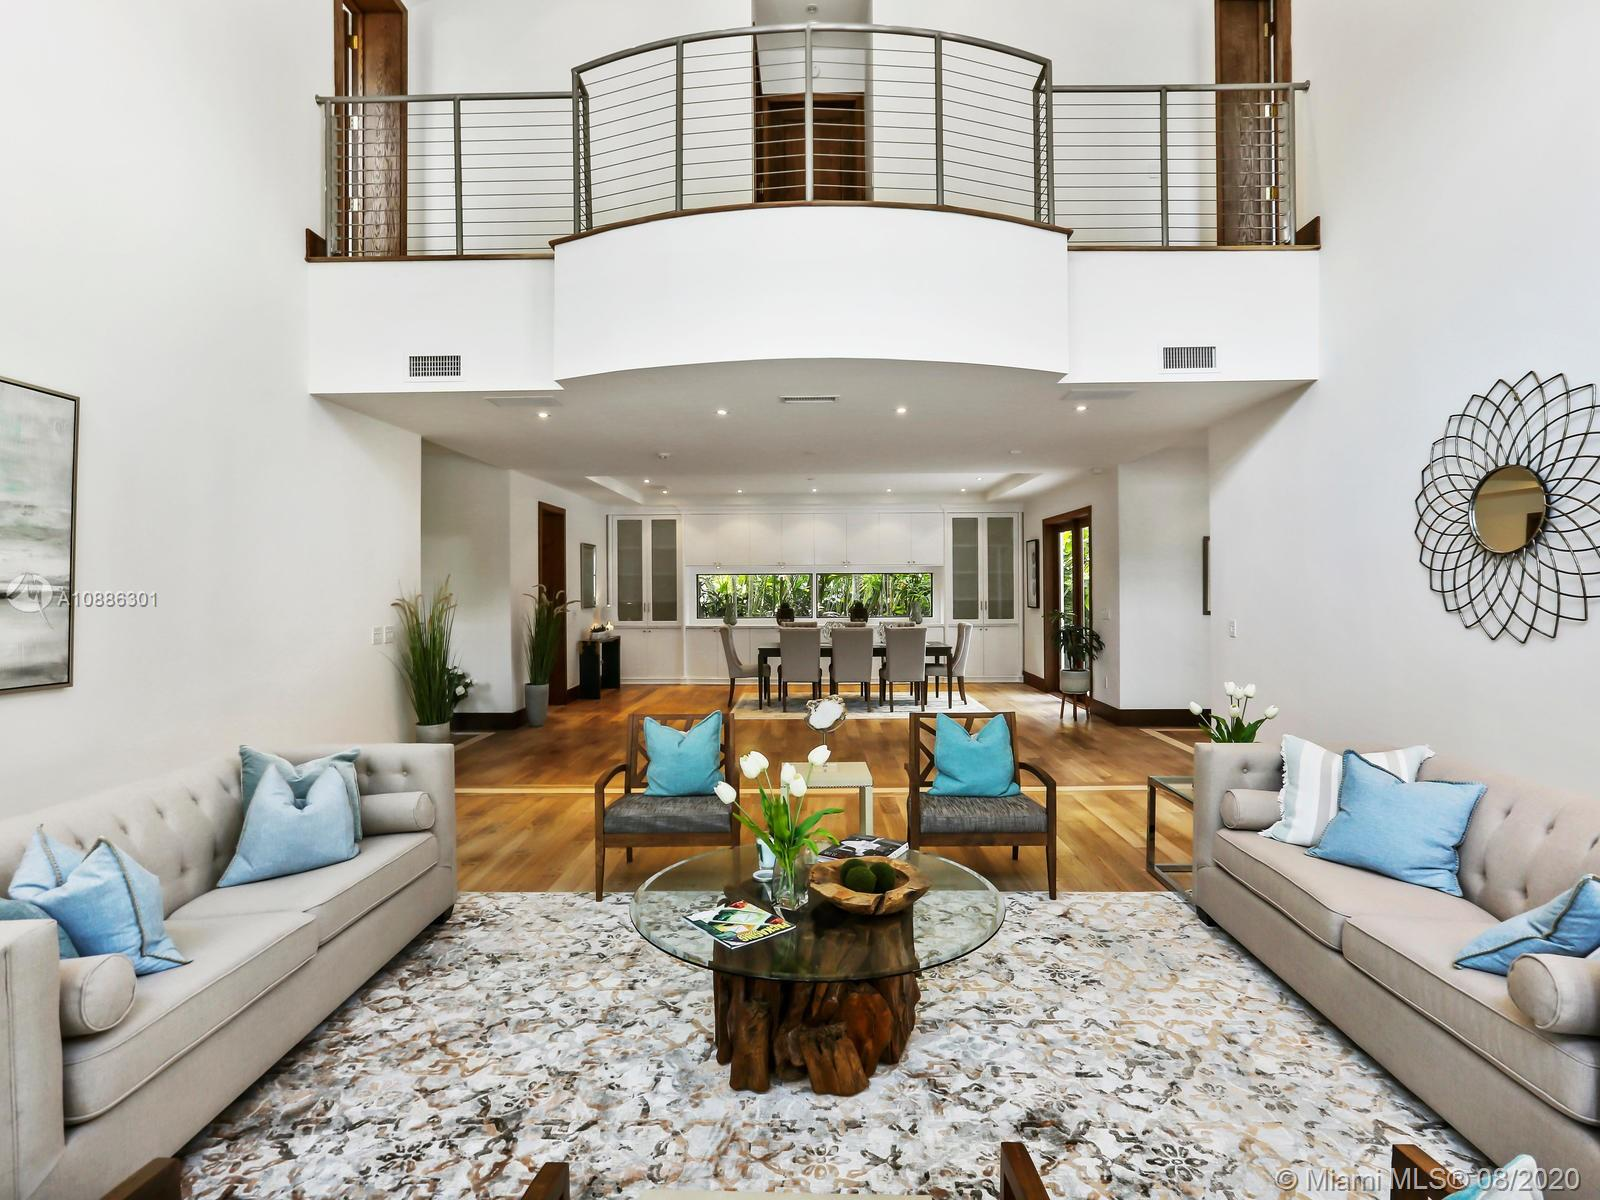 Voted best high end value for exclusivity in South Gables. Remodeled 2-story home on nearly 30,000SF of lush land tucked away on cul-de-sac in Coral Gables' newly-approved gated community in Banyan Lakes near Matheson Hammock Park & Miami's top schools. Luxury living & private.7,256 SF of interior space offering tons of natural light, 10' & vaulted ceilings, Walnut floors,impact windows,6 beds with ensuite baths, master suite & 600-SF private terrace, great room with 24' ceilings,formal dining & chef's kitchen with marble island,2 refrigerators & Thermador gas cooktop/French grill.German Poggenpohl cabinetry. Entertainer's home offering a seamless indoor/outdoor flow to the expansive outdoor covered terrace,marble pool deck, 65'lap pool, cabana bath & garden. 2-car garage & NEW metal roof.